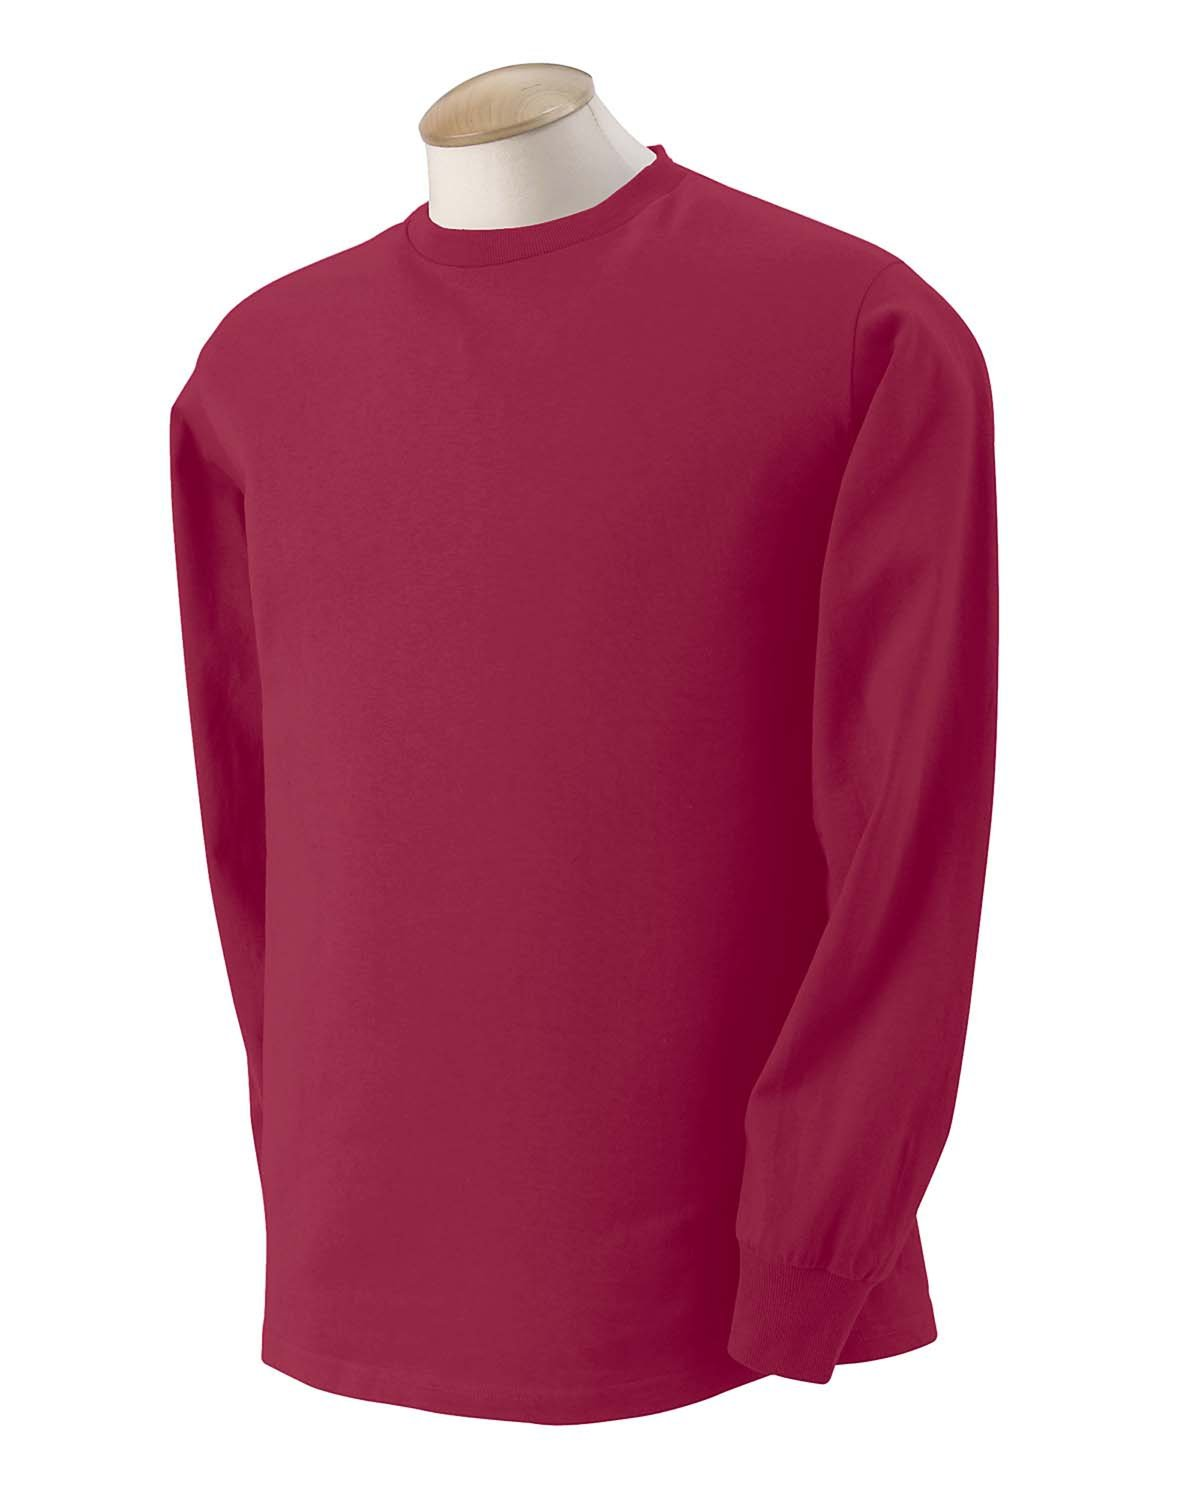 Fruit of the Loom Adult HD Cotton™ Long-Sleeve T-Shirt MAROON